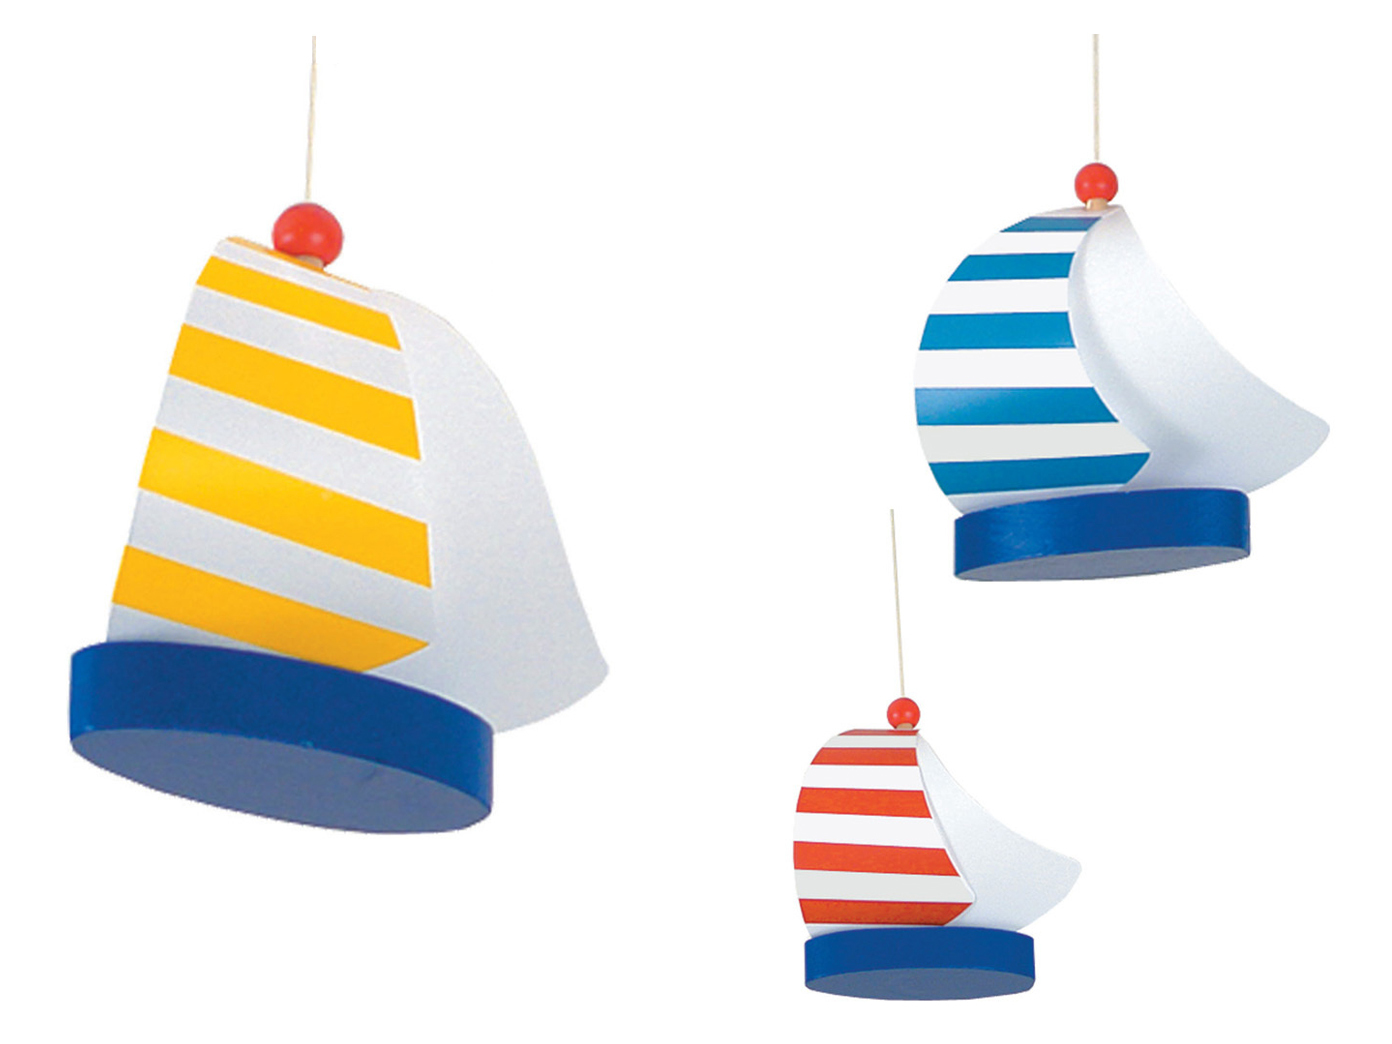 kinderzimmerlampe rund 53cm segelboote mobile deckenlampe f r kinderzimmer ebay. Black Bedroom Furniture Sets. Home Design Ideas